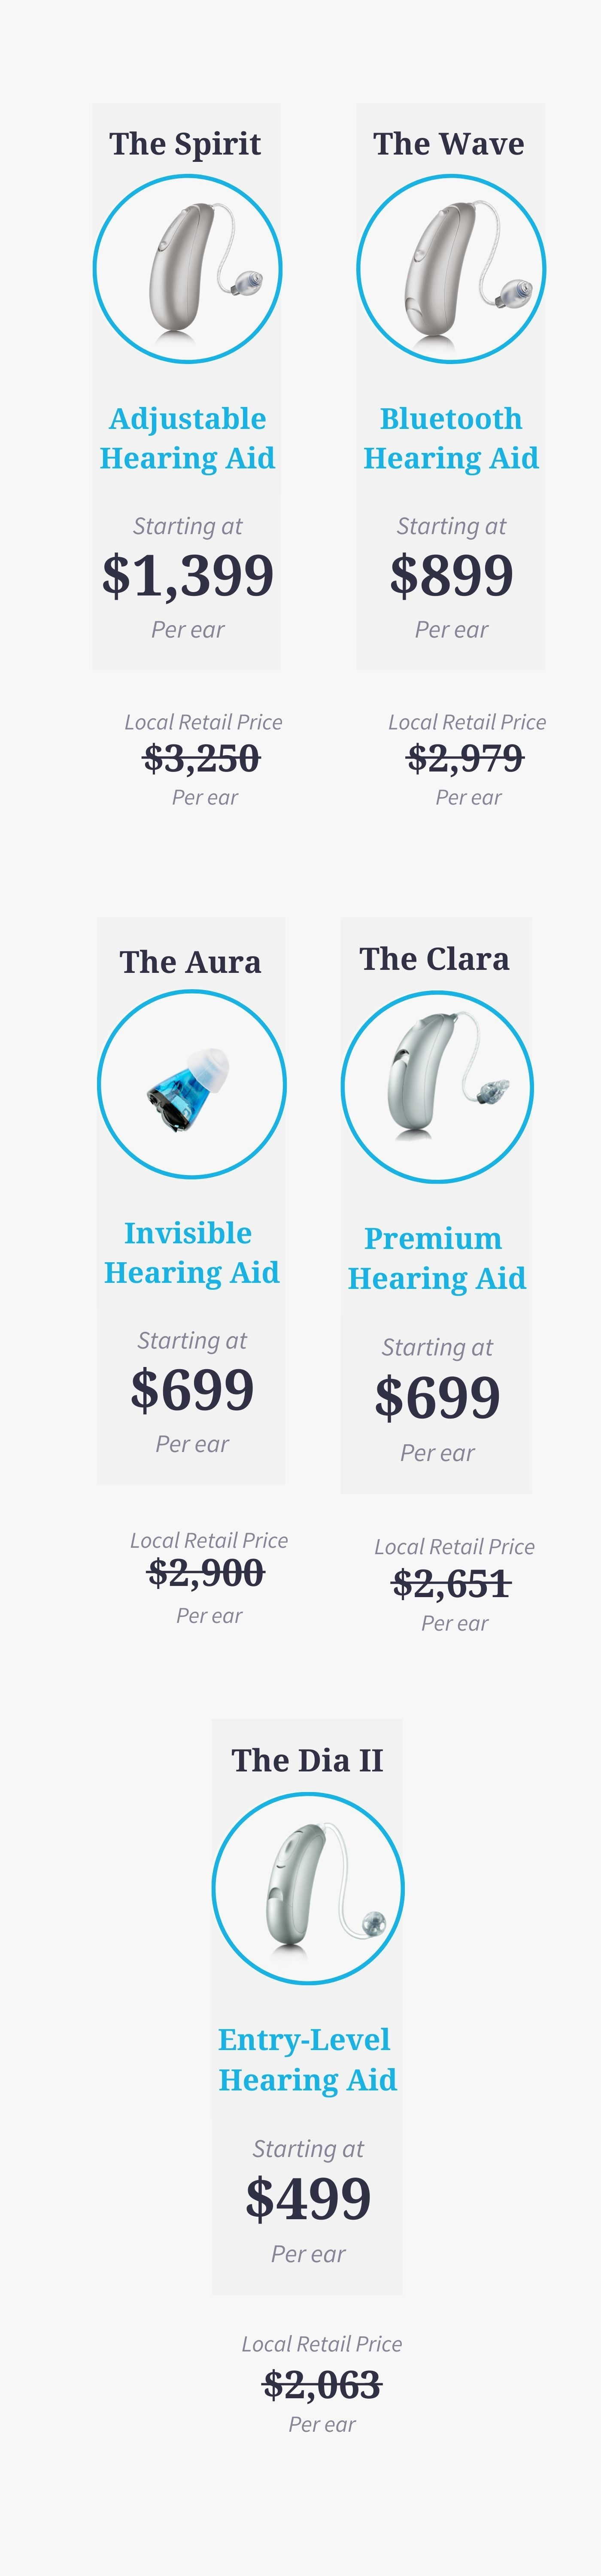 Compare our hearing aid prices